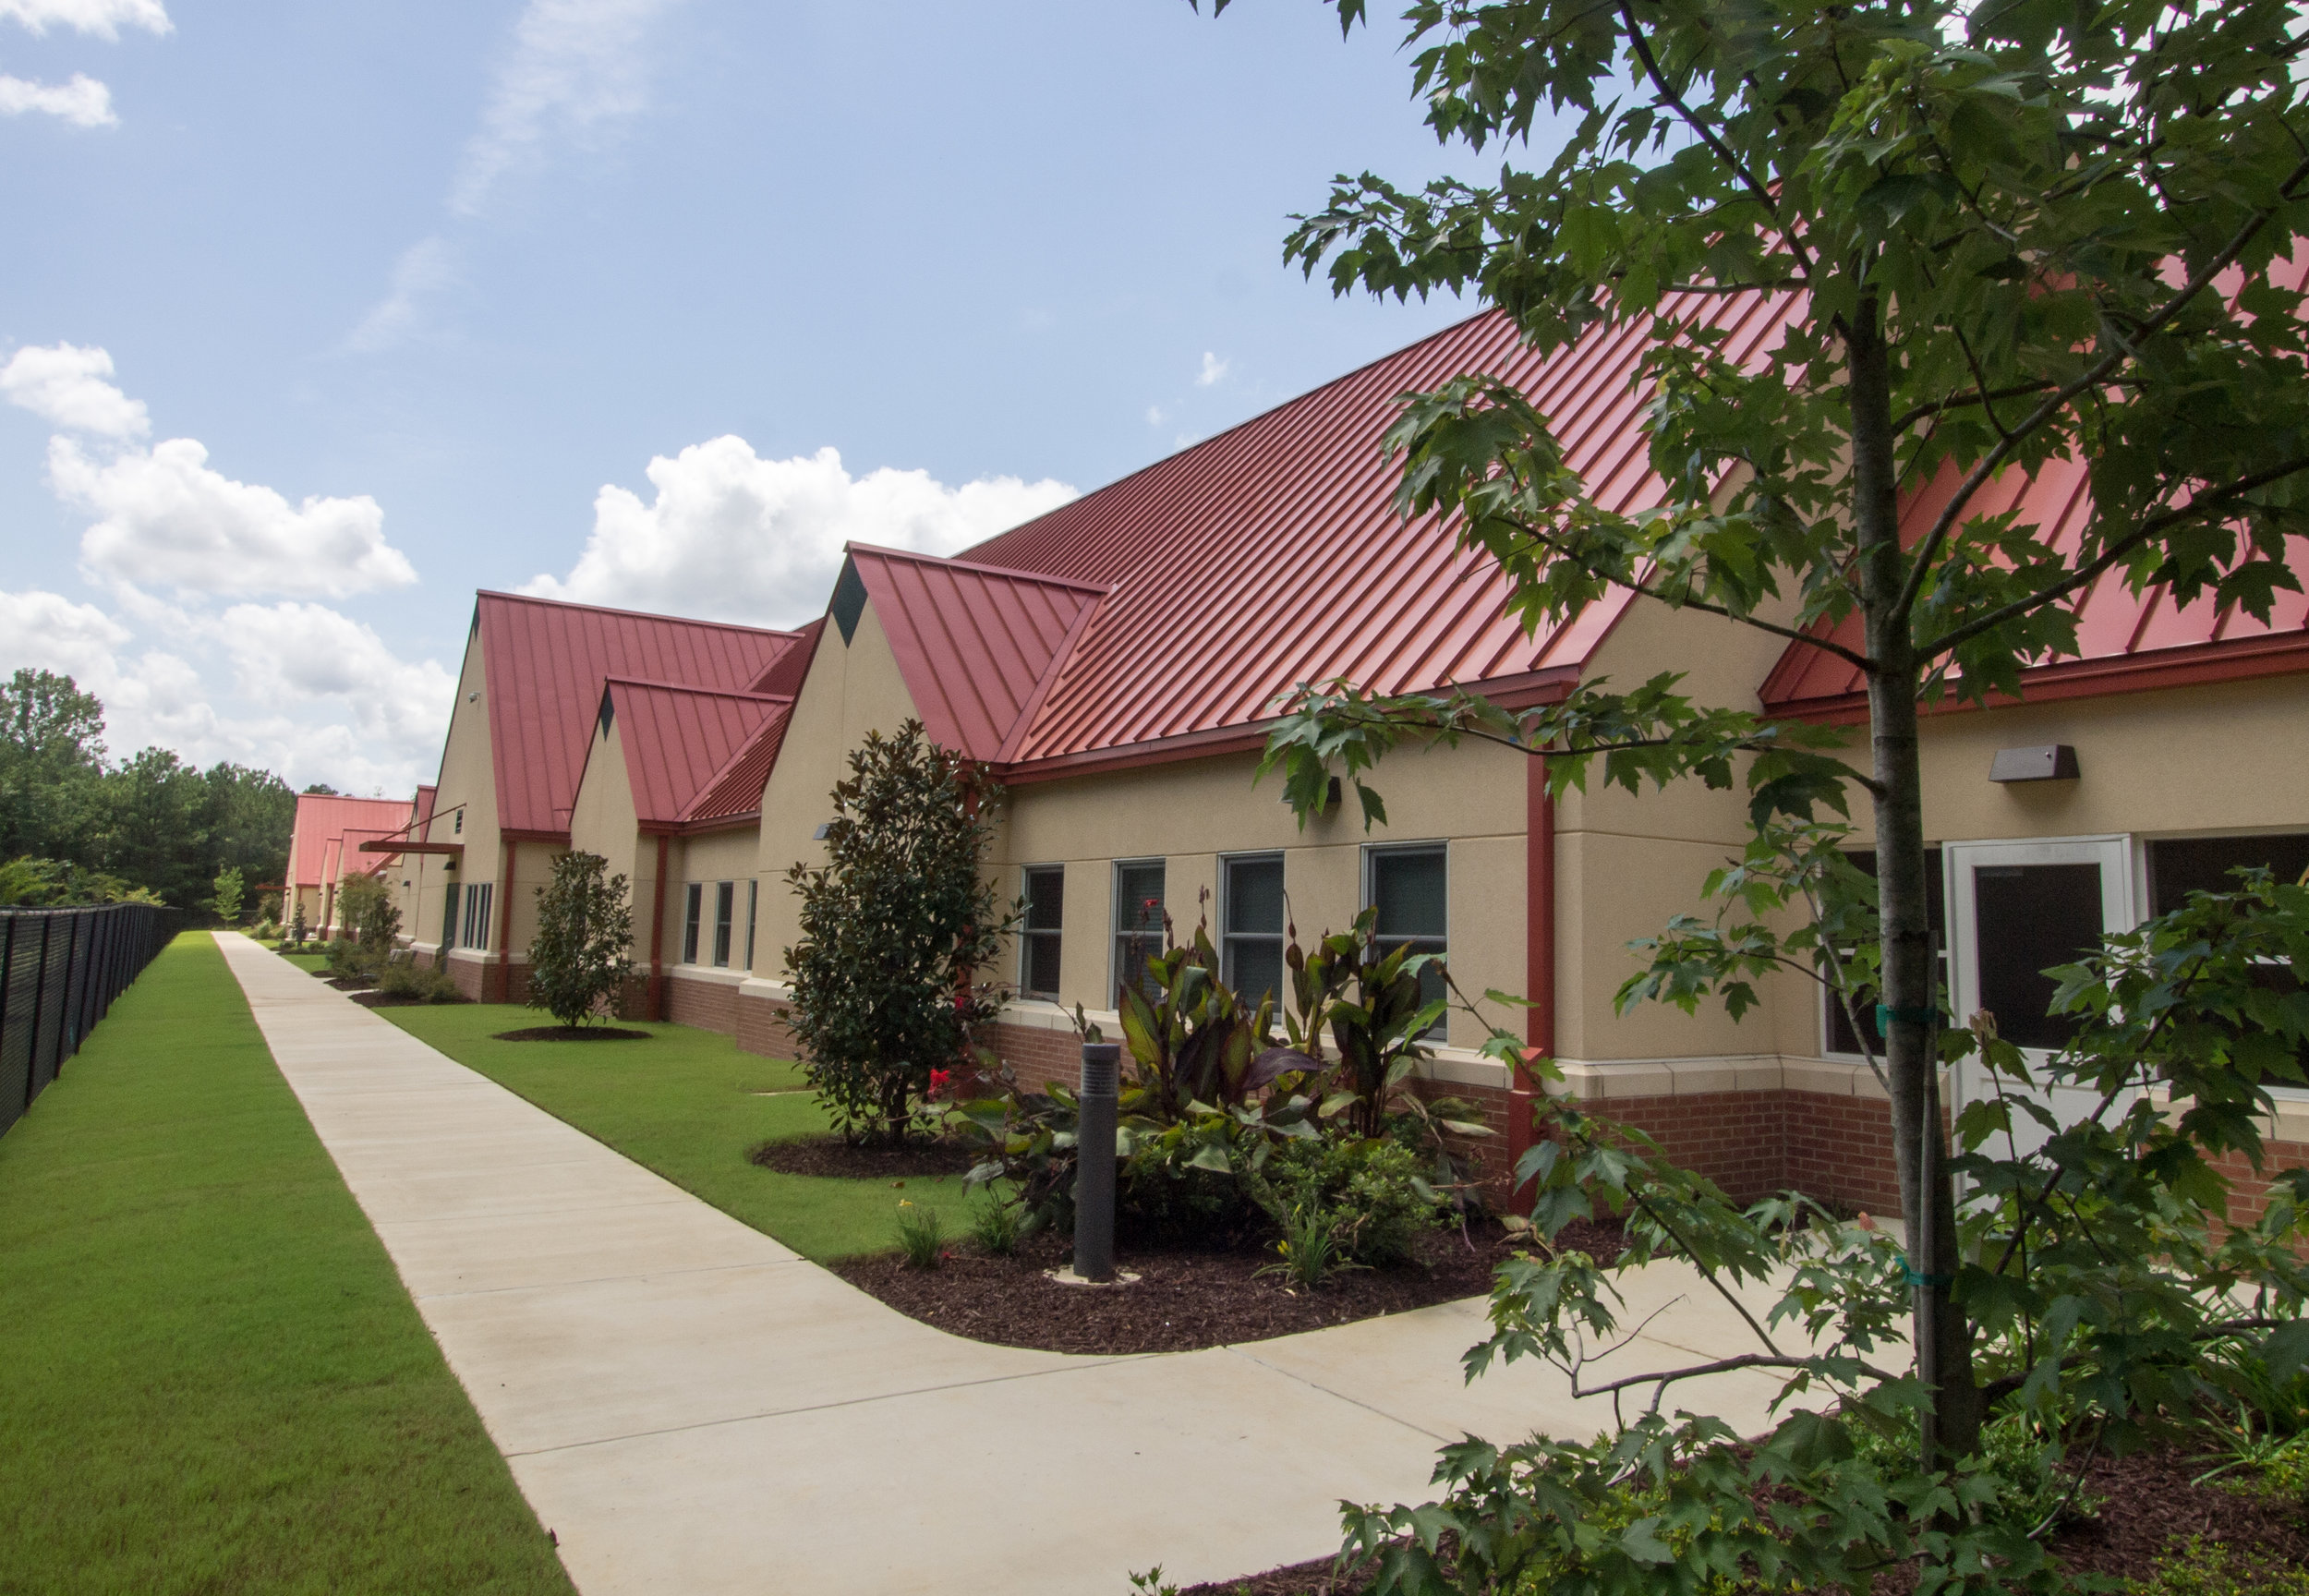 The Alzheimer's facility at St. Catherine's Village is located in Madison, Mississippi.